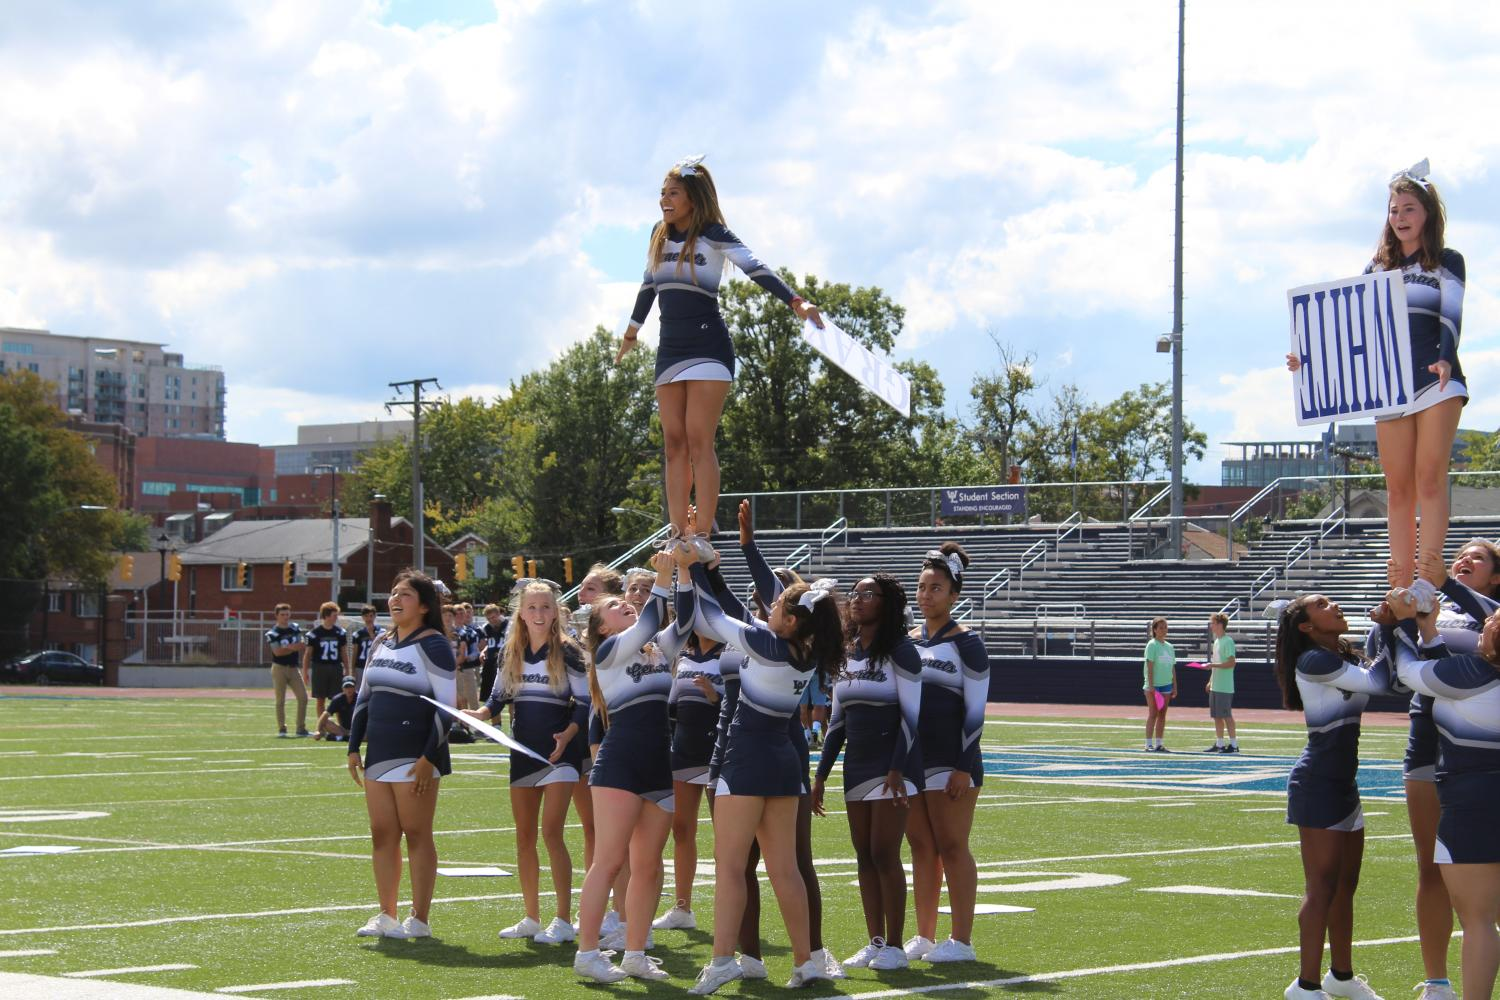 The varsity cheer team lift up one of their members during a special move in their routine